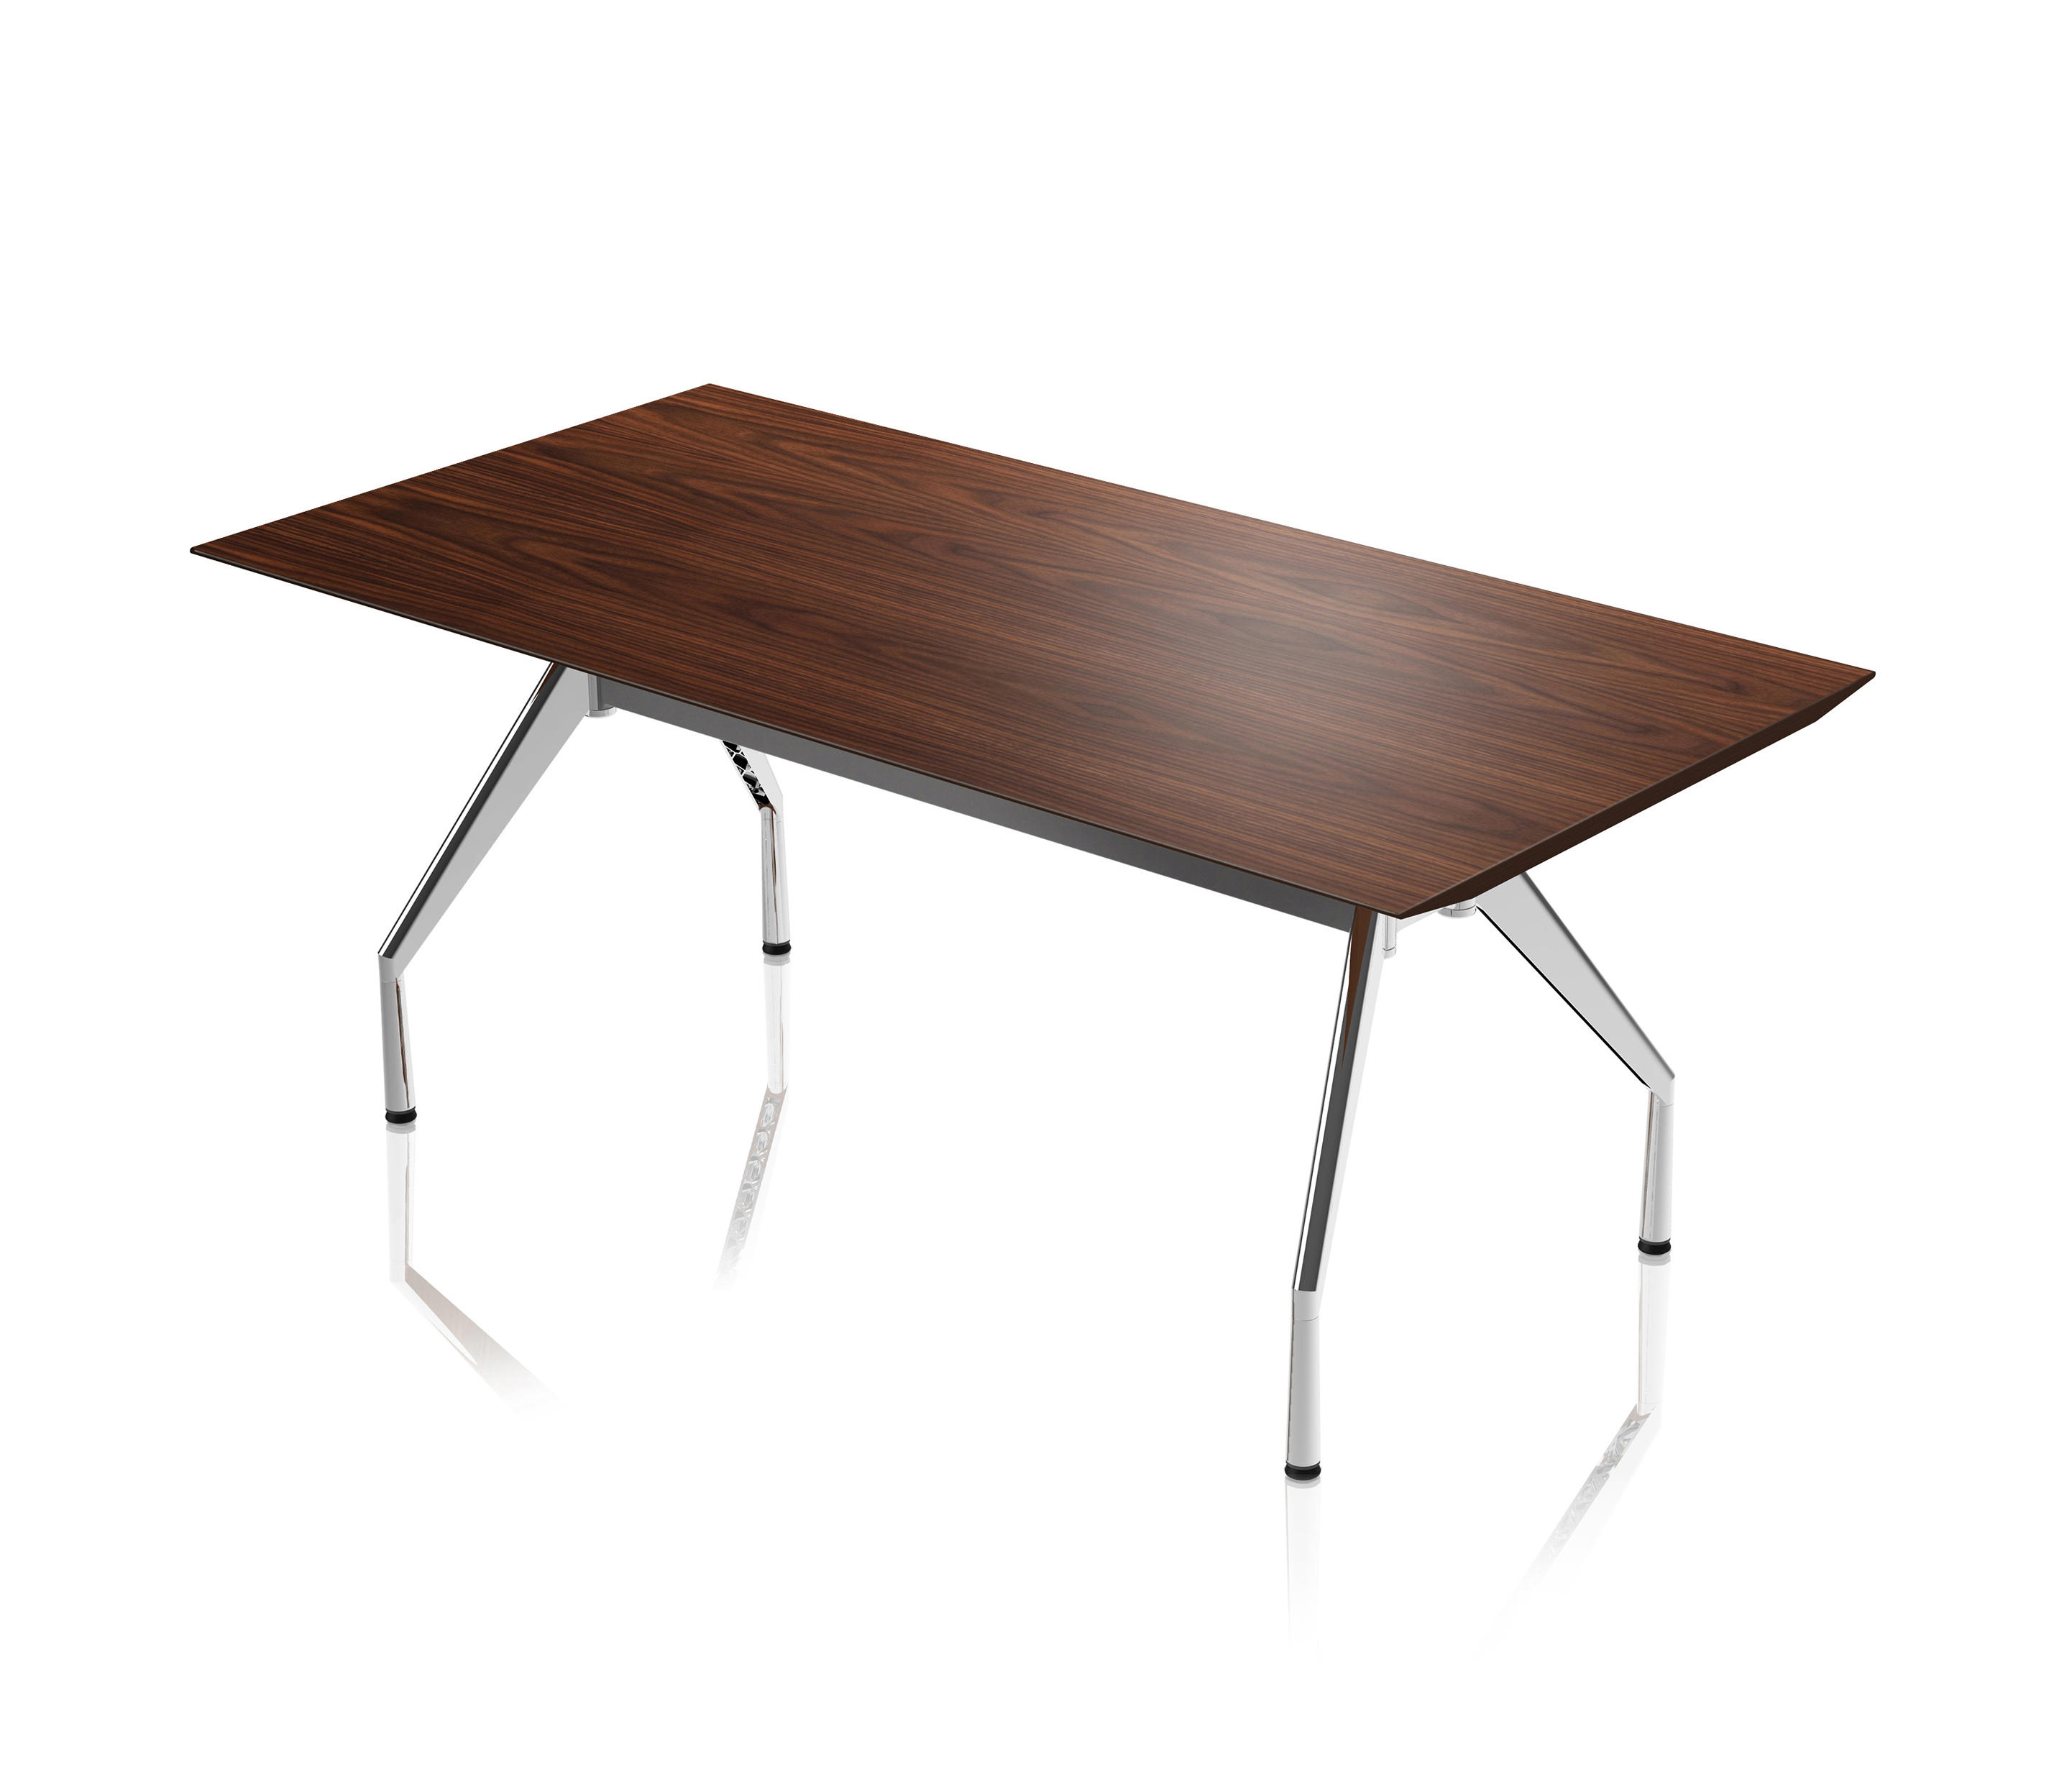 FALLON CONFERENCE TABLE Contract Tables From Fröscher Architonic - Conference pool table